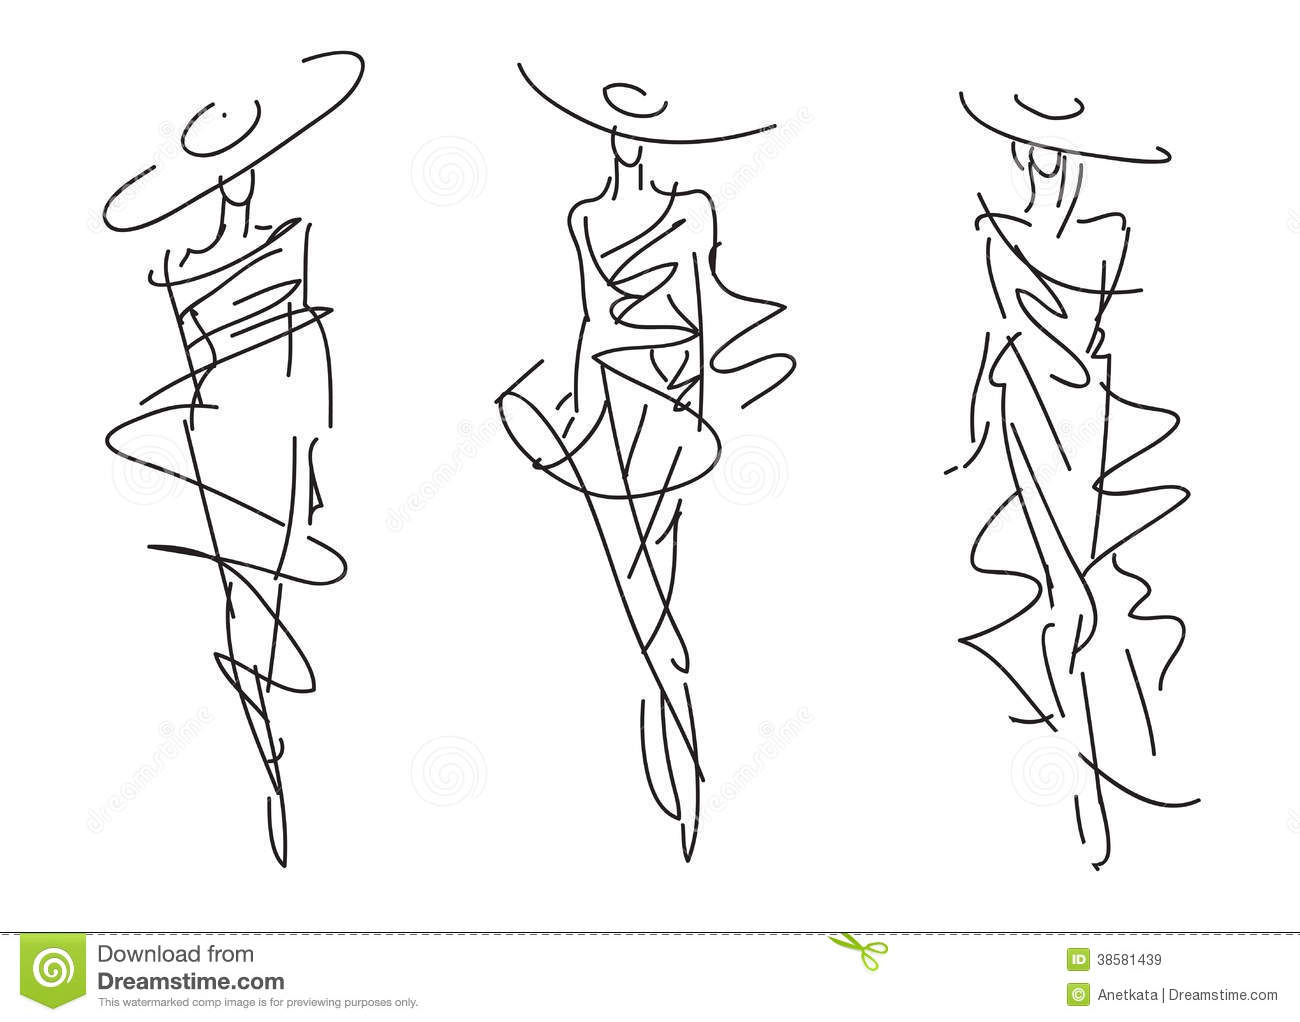 This is a photo of Dynamite Fashion Poses Drawing